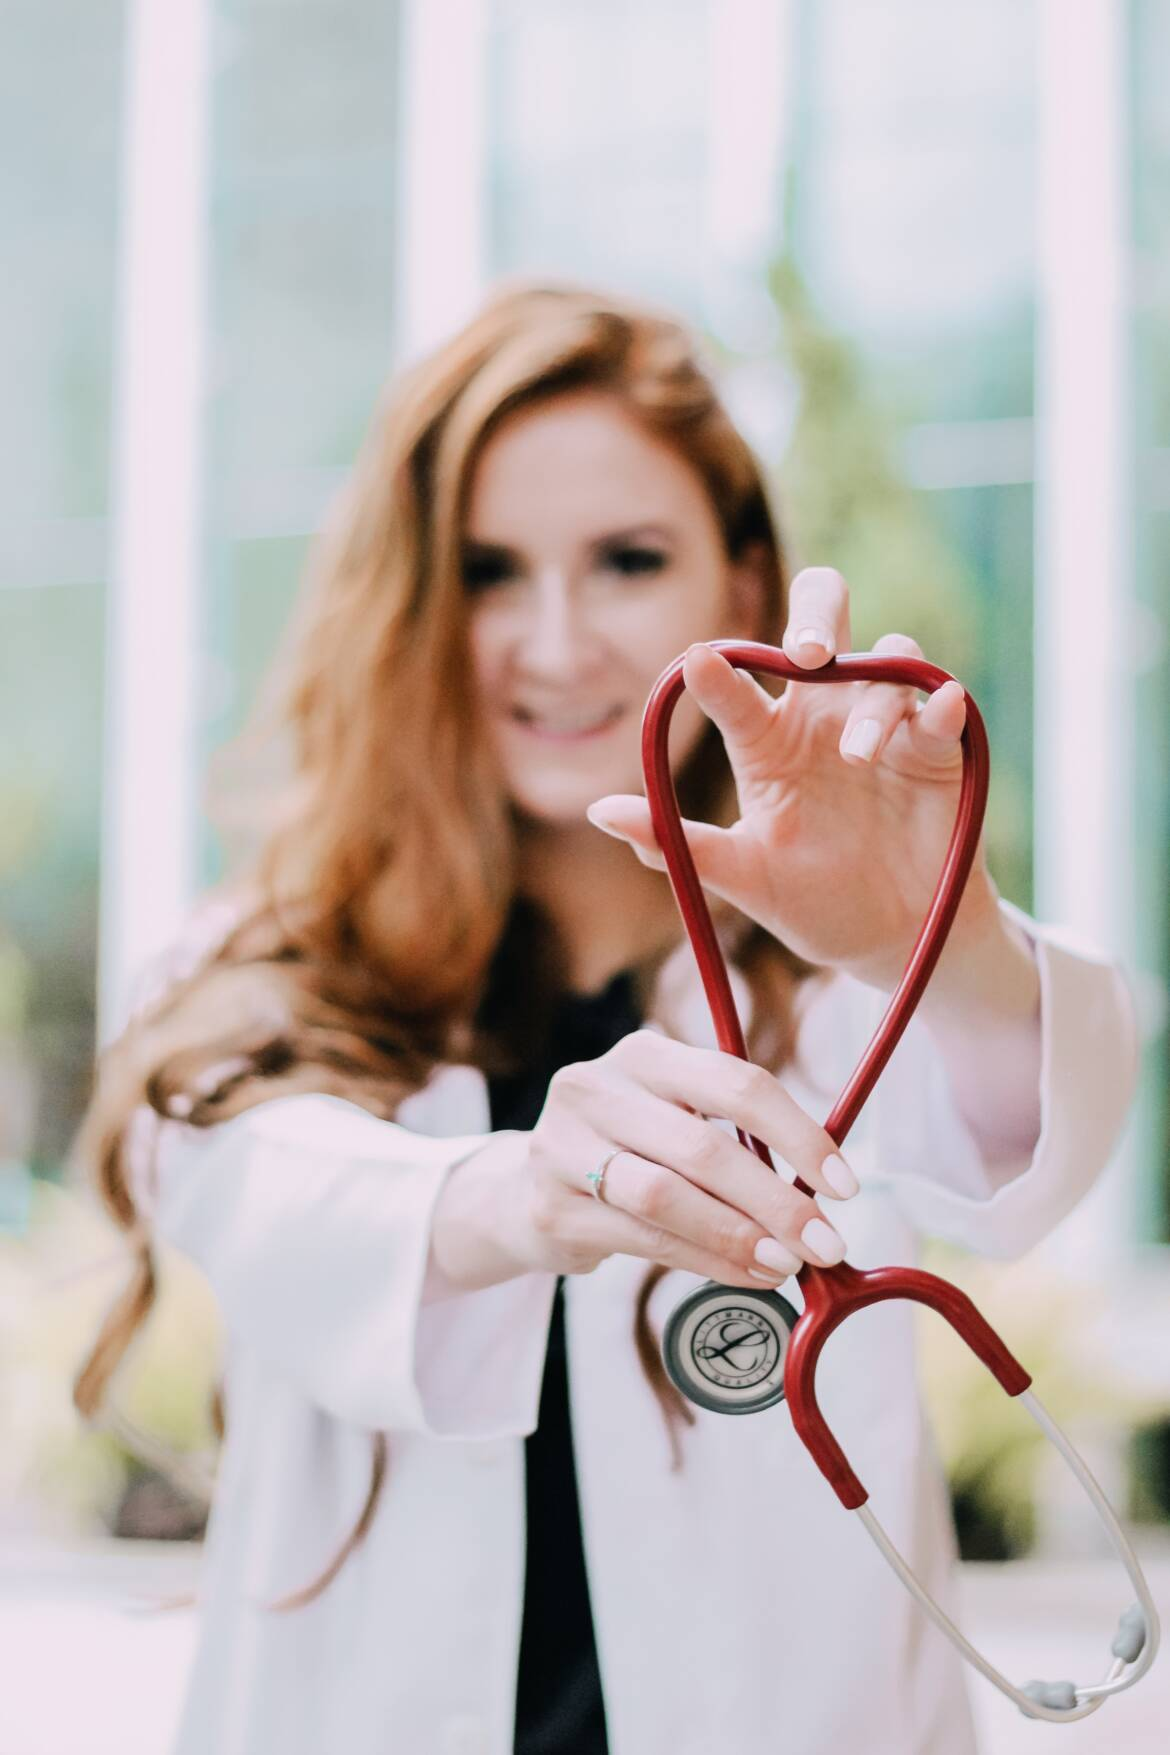 photo-of-woman-holding-red-stethoscope-3408368.jpg